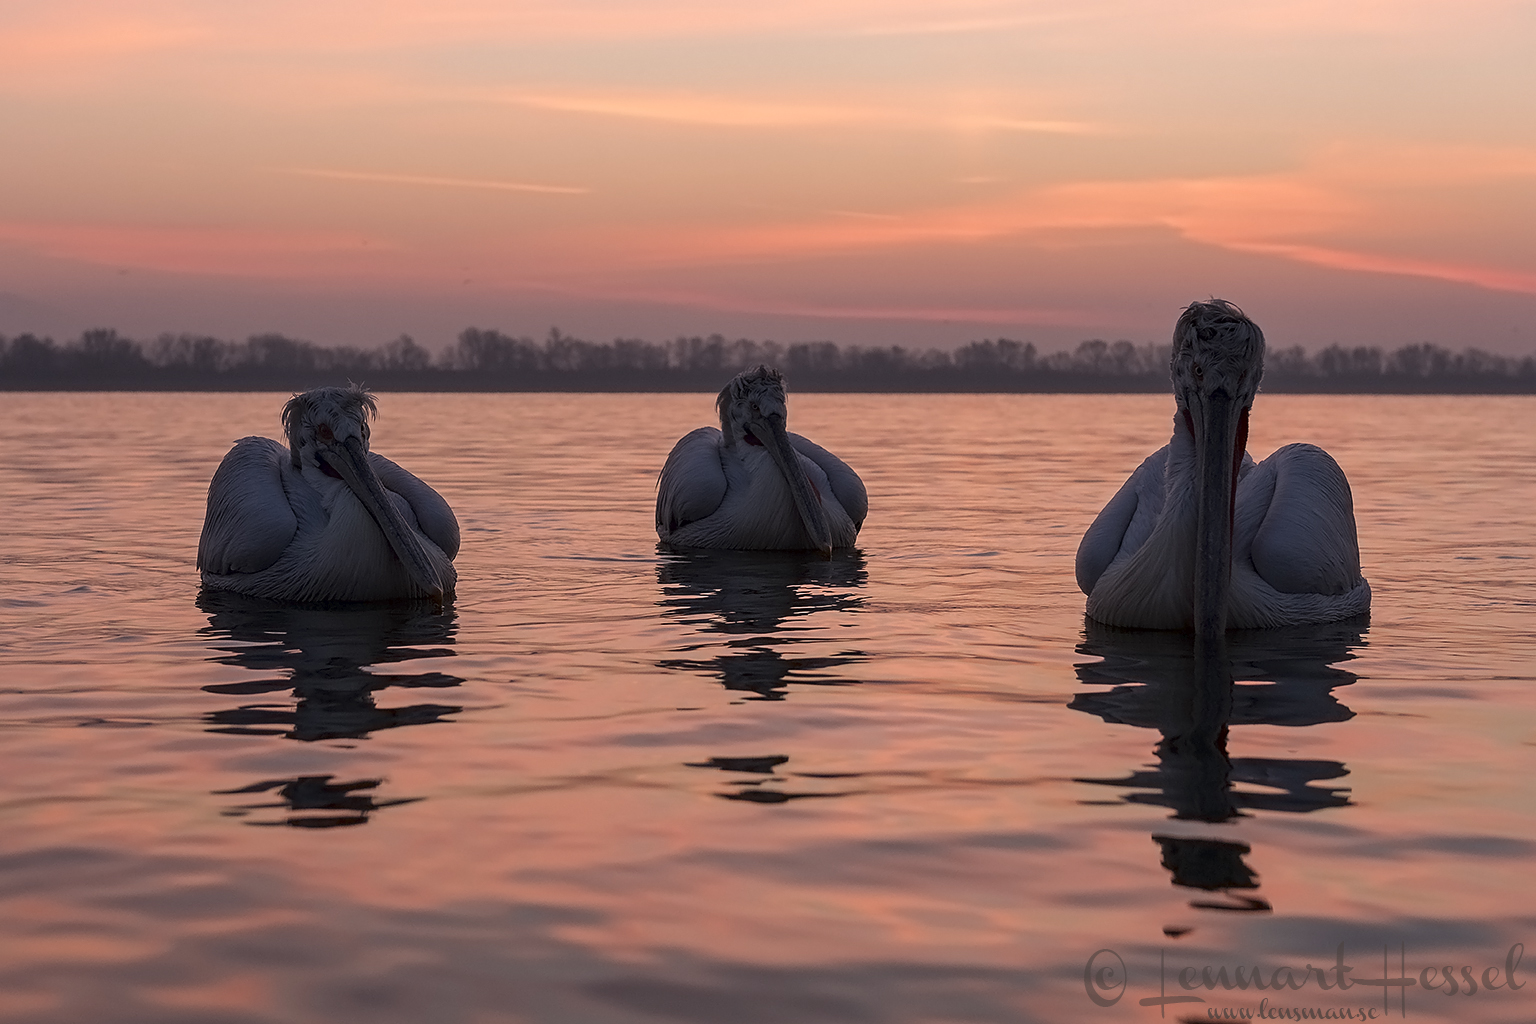 Dalmatian Pelicans at sunrise Lake Kerkini